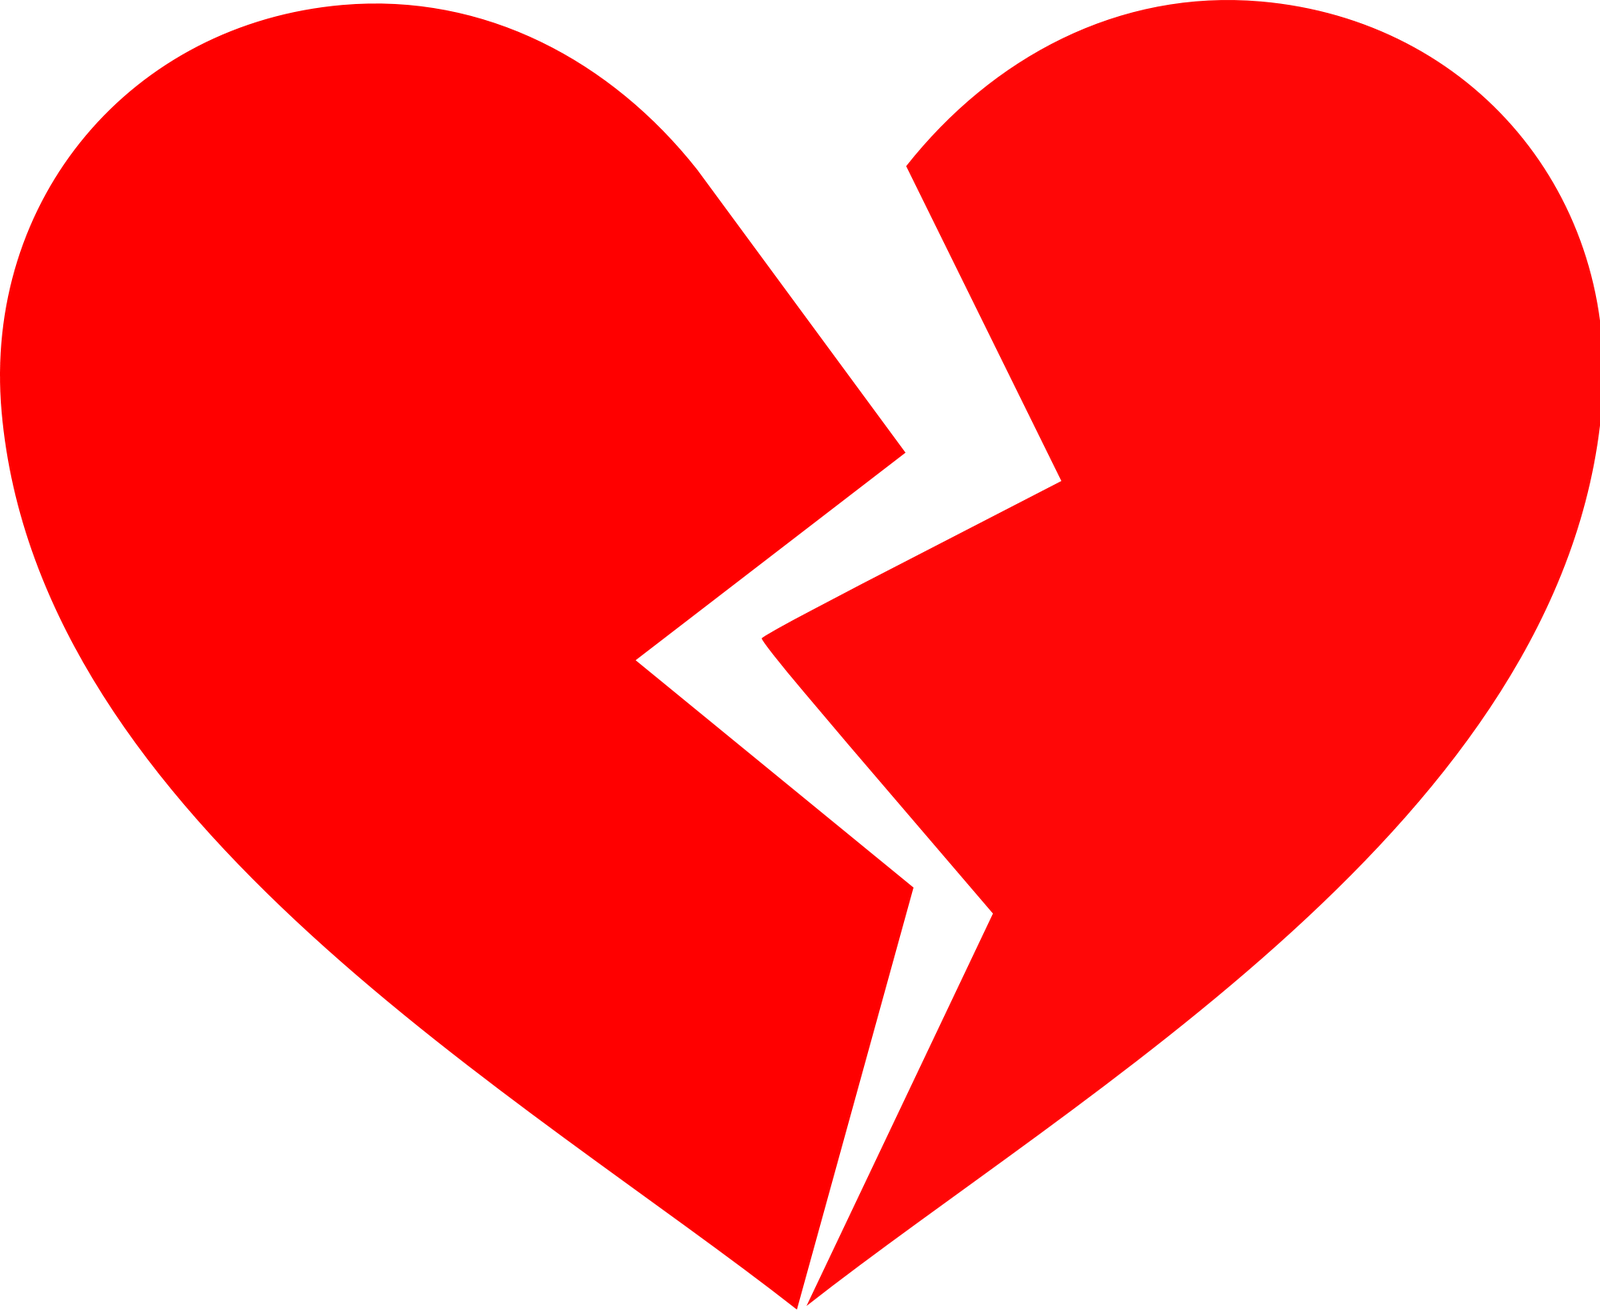 Free Download High Quality Broken Heart Png Transparent Background This Is Vector Lovely 3d Png Red Color Broken H Love Png Transparent Background Broken Heart